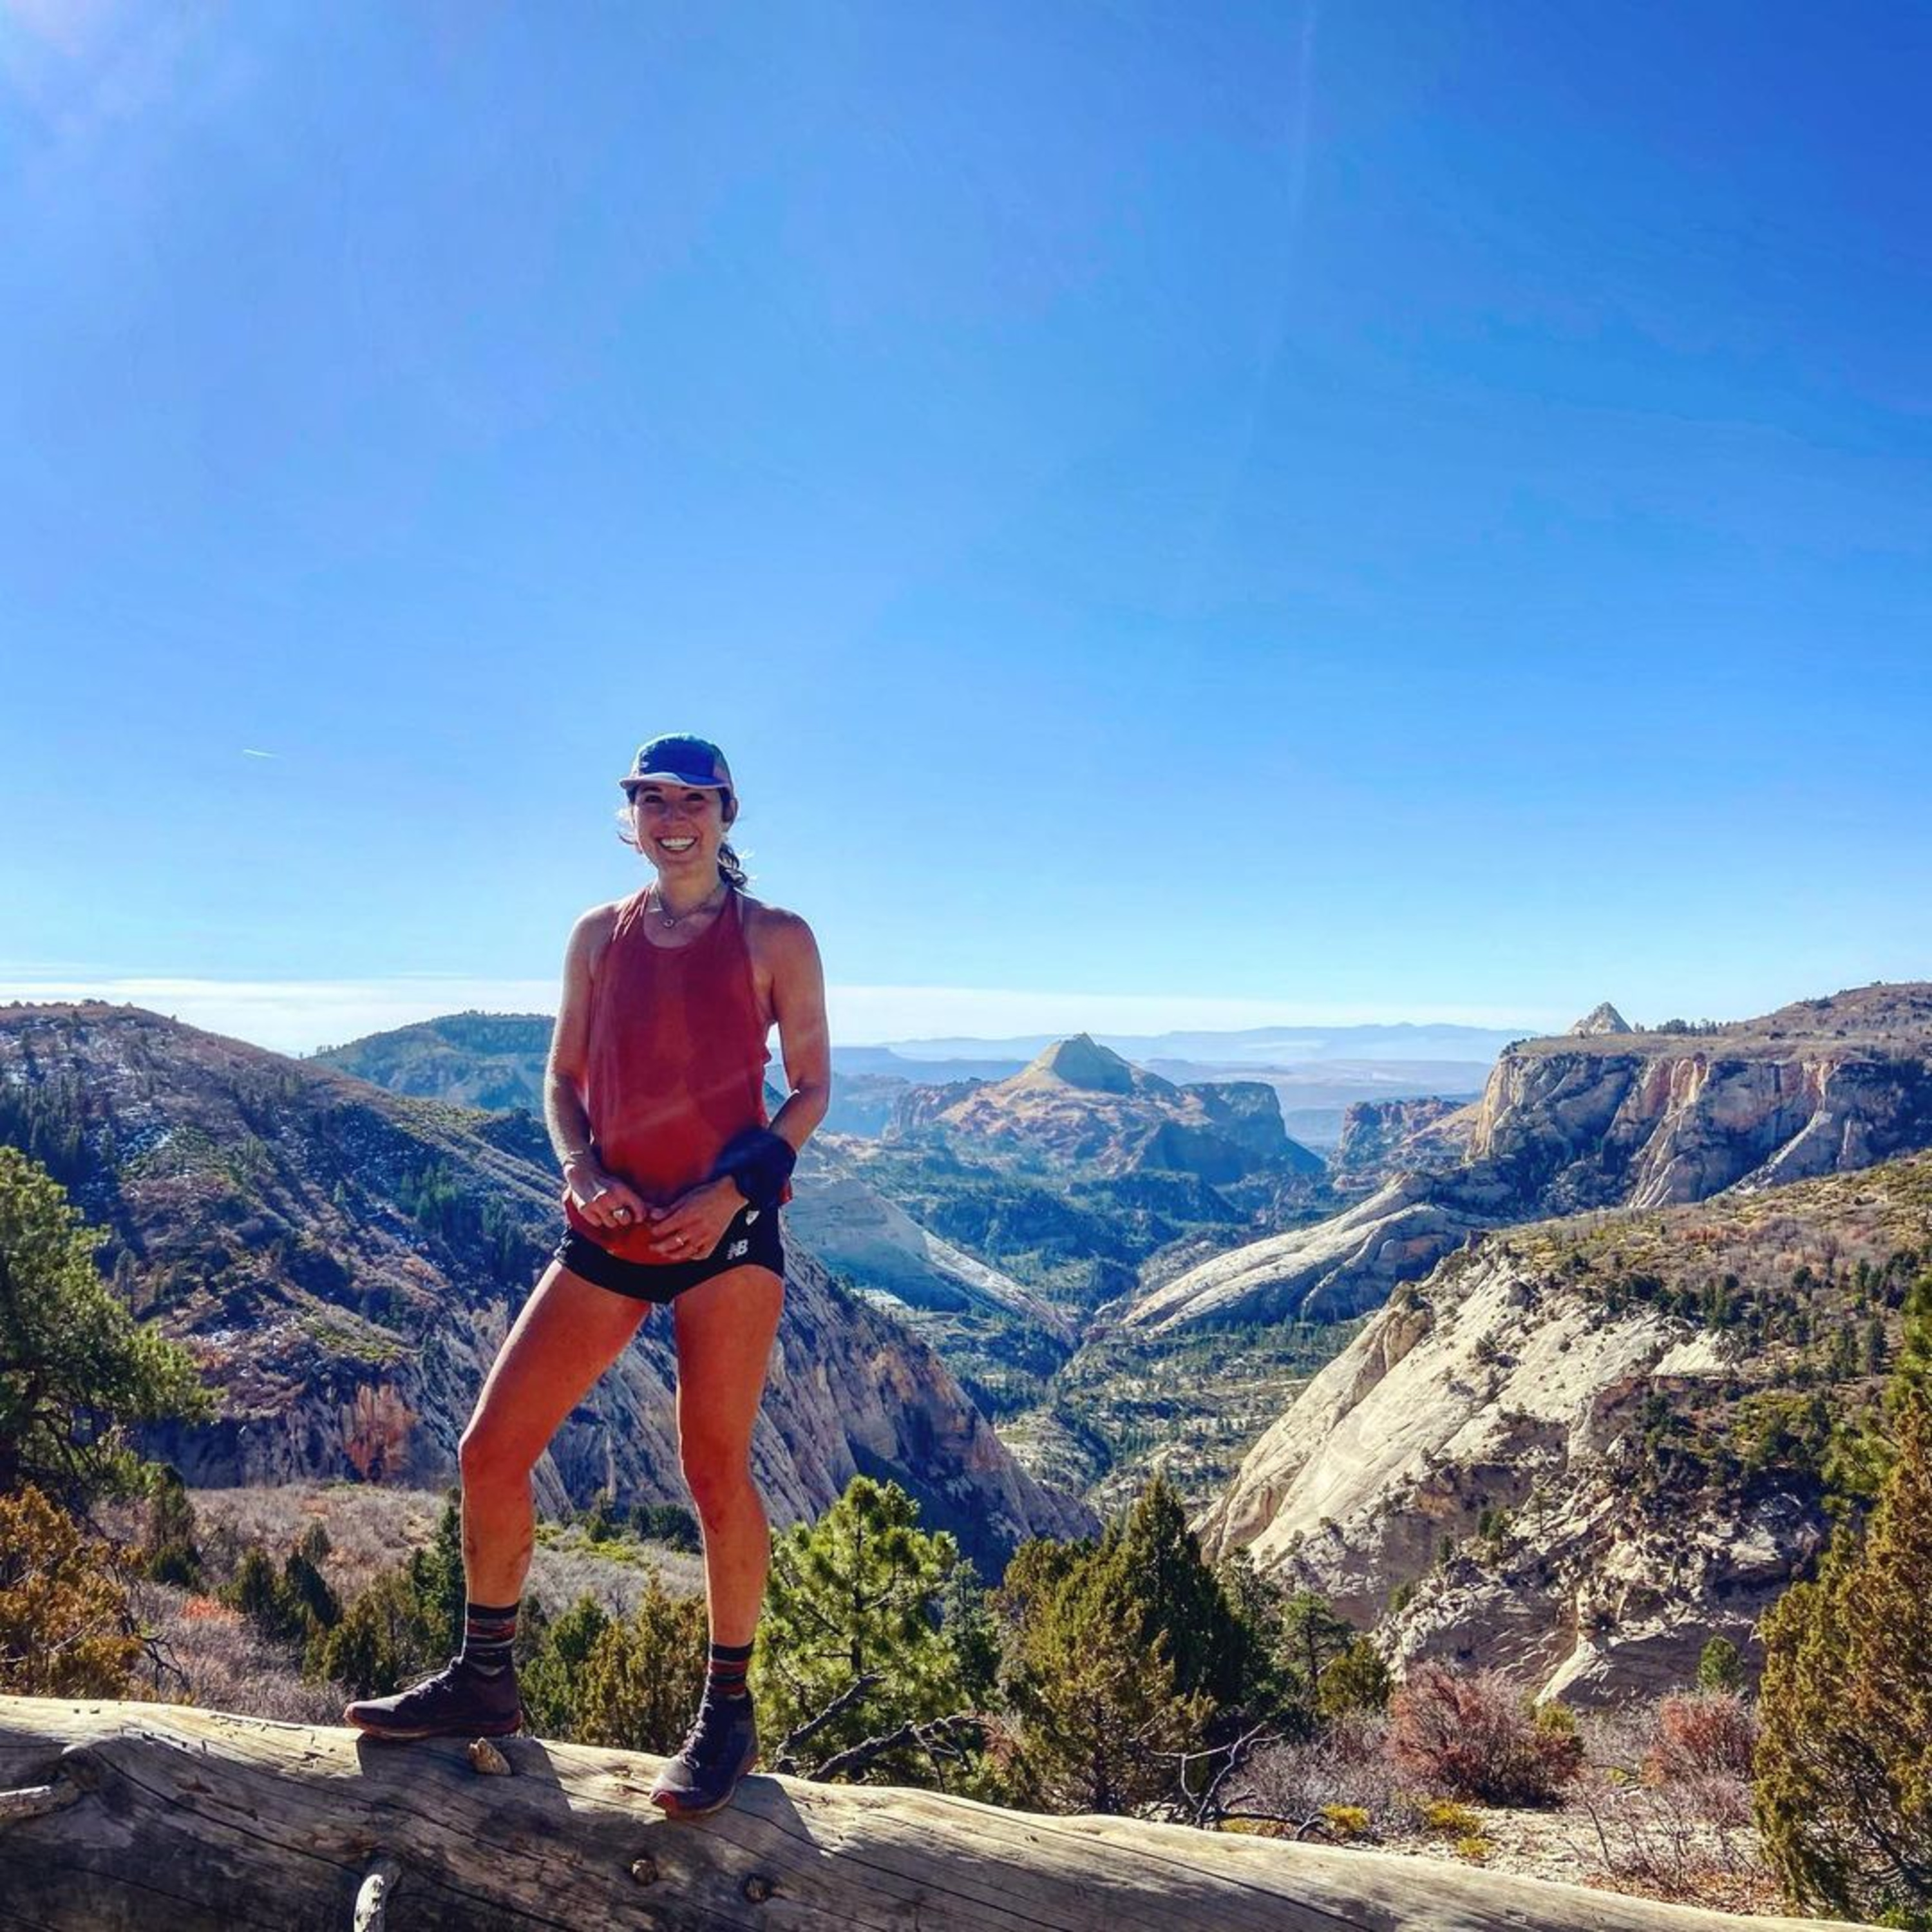 144. Brianna Sacks: Ultra running and ultra reporting